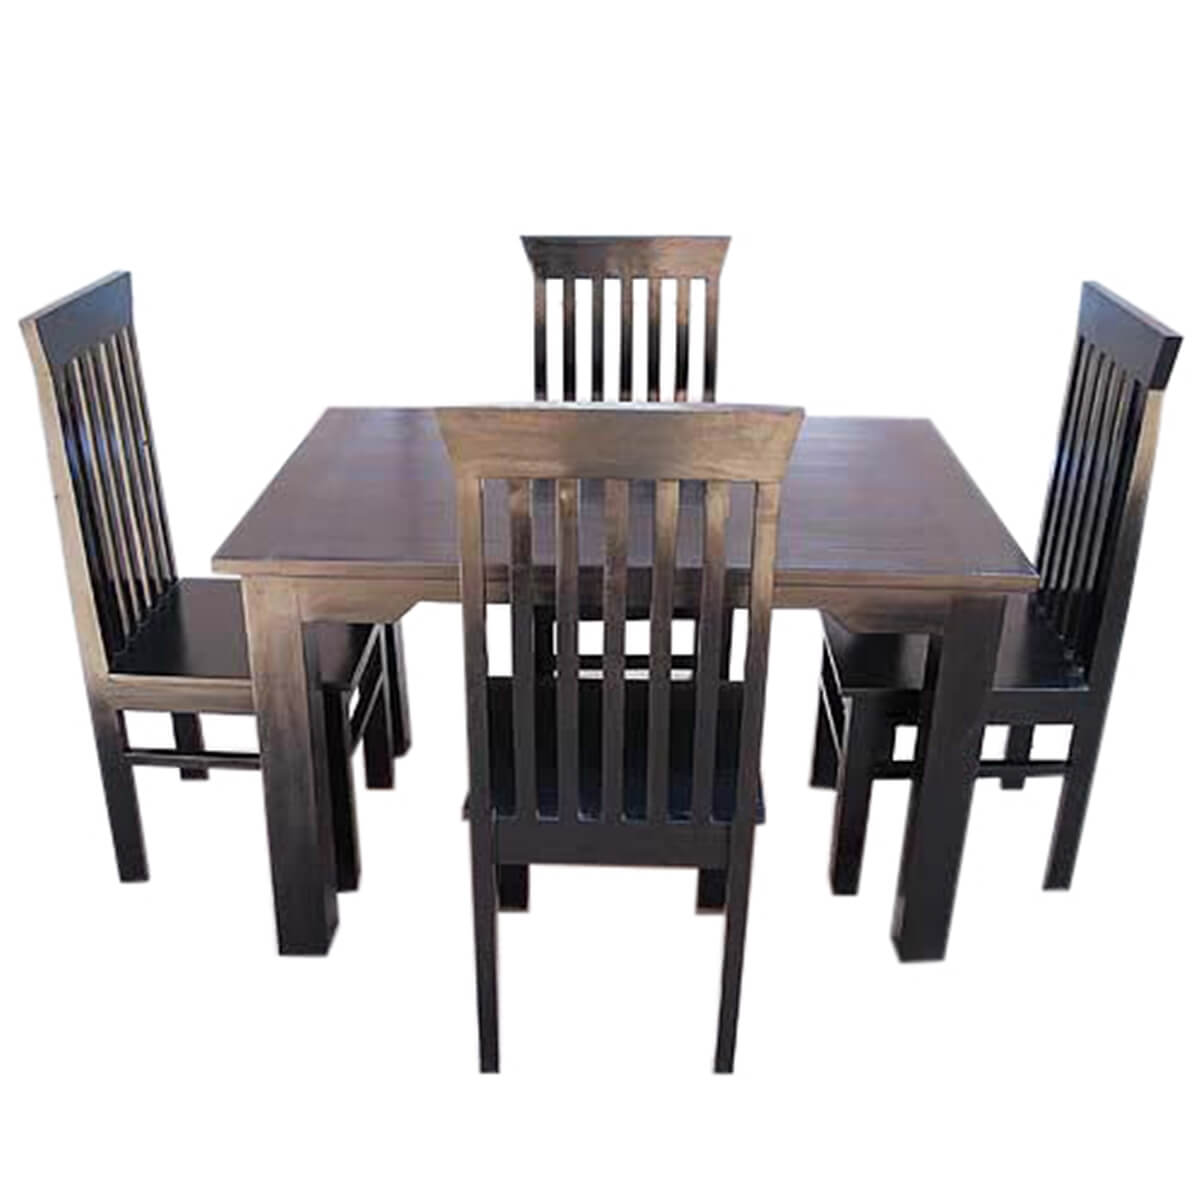 Contemporary lincoln kitchen dining room table chairs set for Contemporary dining room table